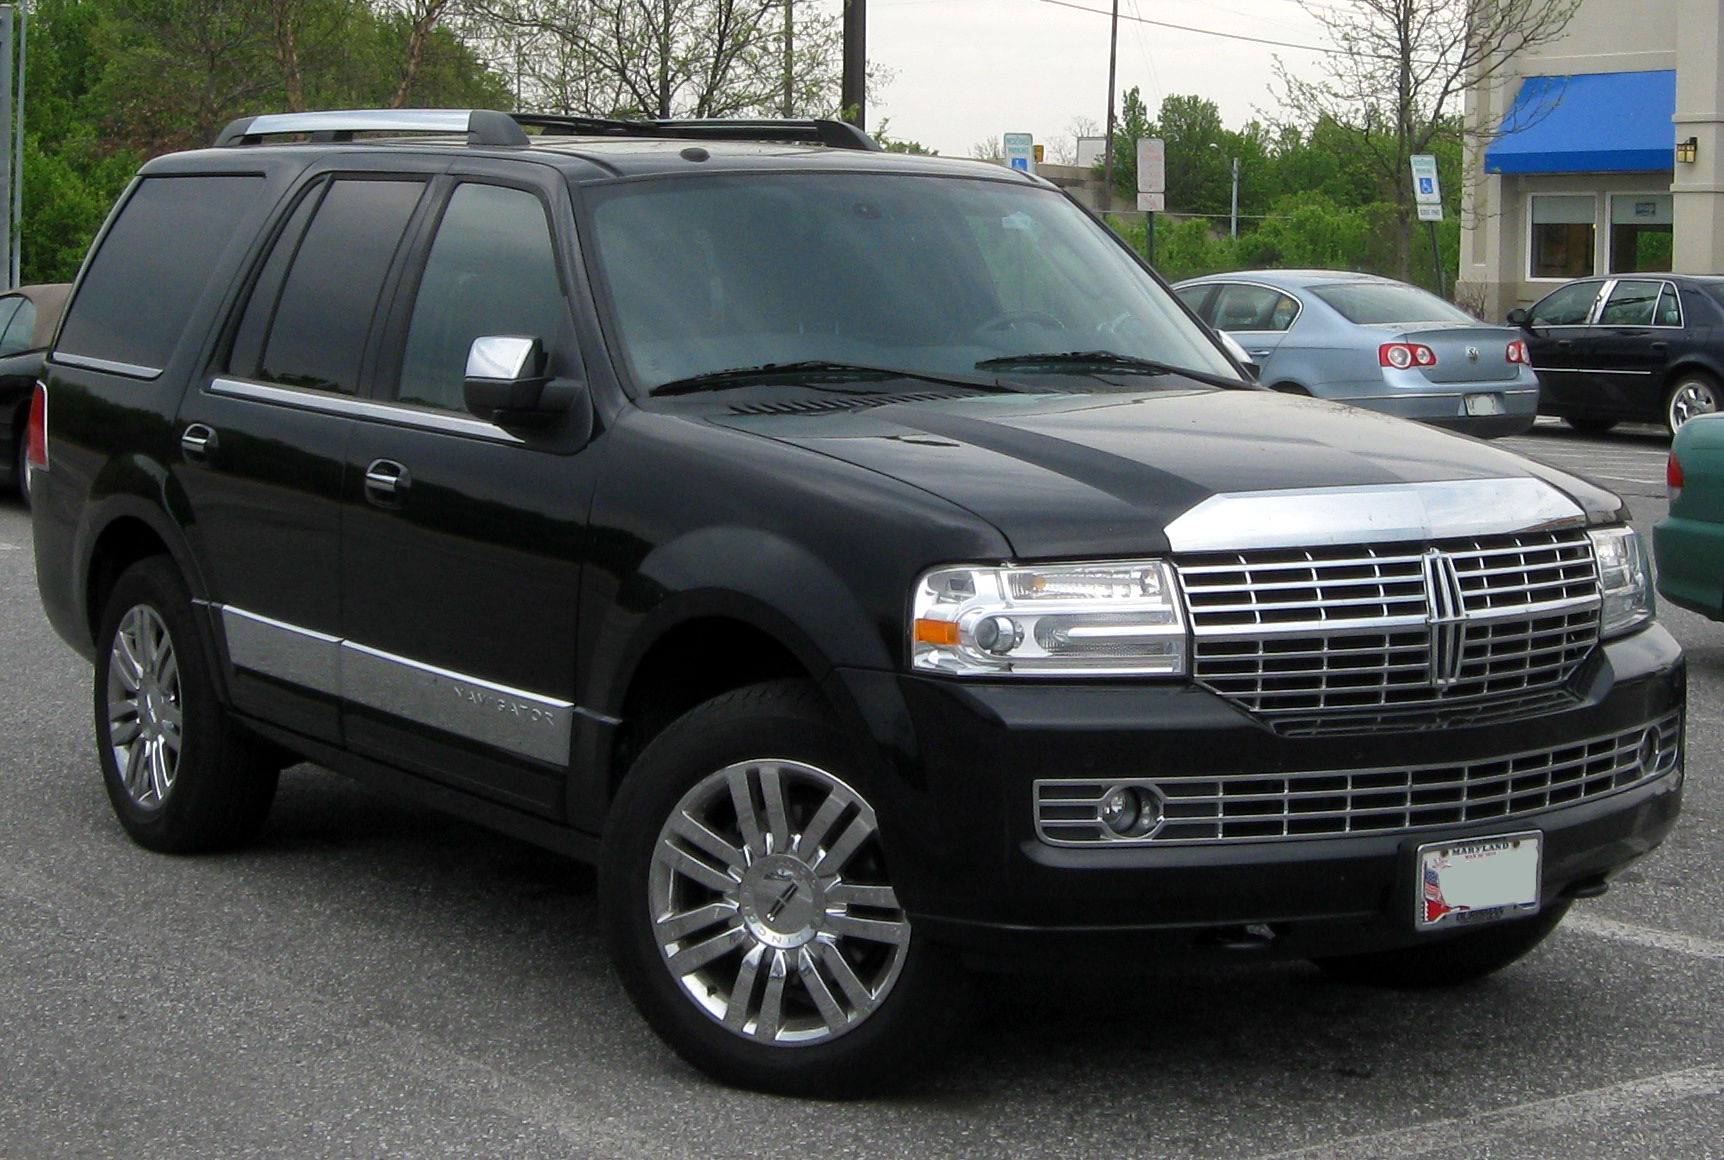 2007 Lincoln Navigator Ultimate - Rants and Raves - Car and Driver